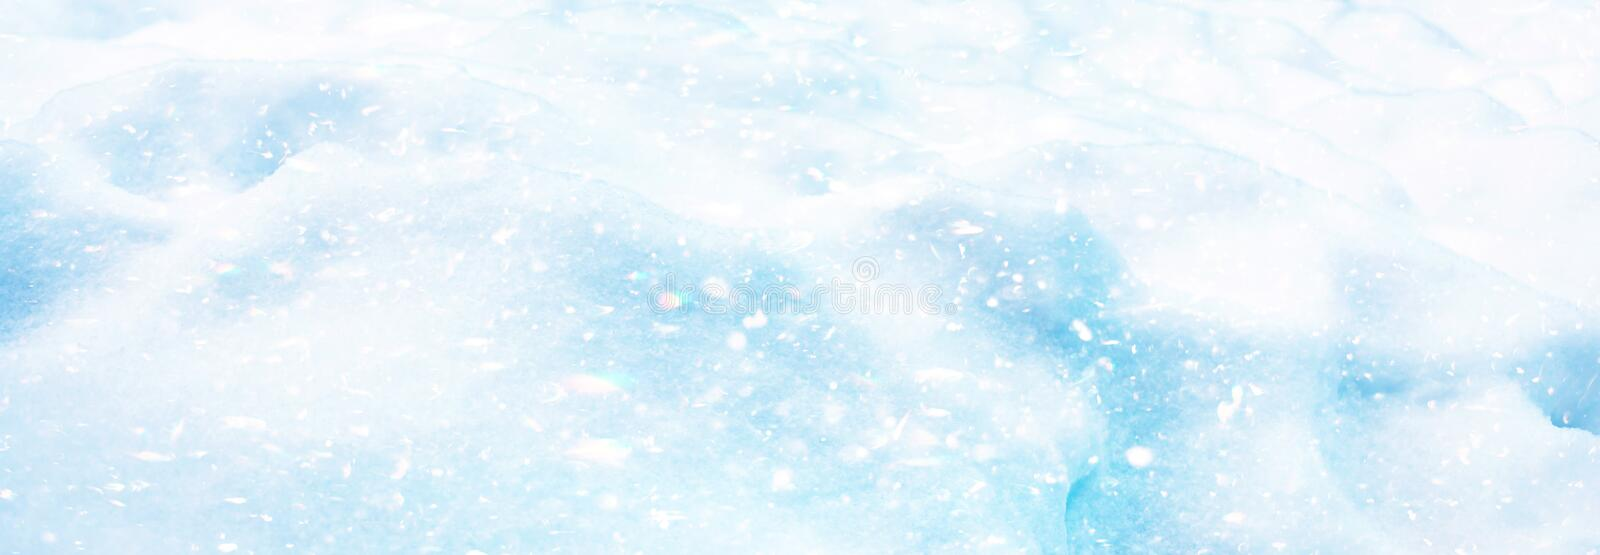 Merry Christmas and Happy New Year snow texture background with colorful shiny snowflakes in the sun.  stock photography